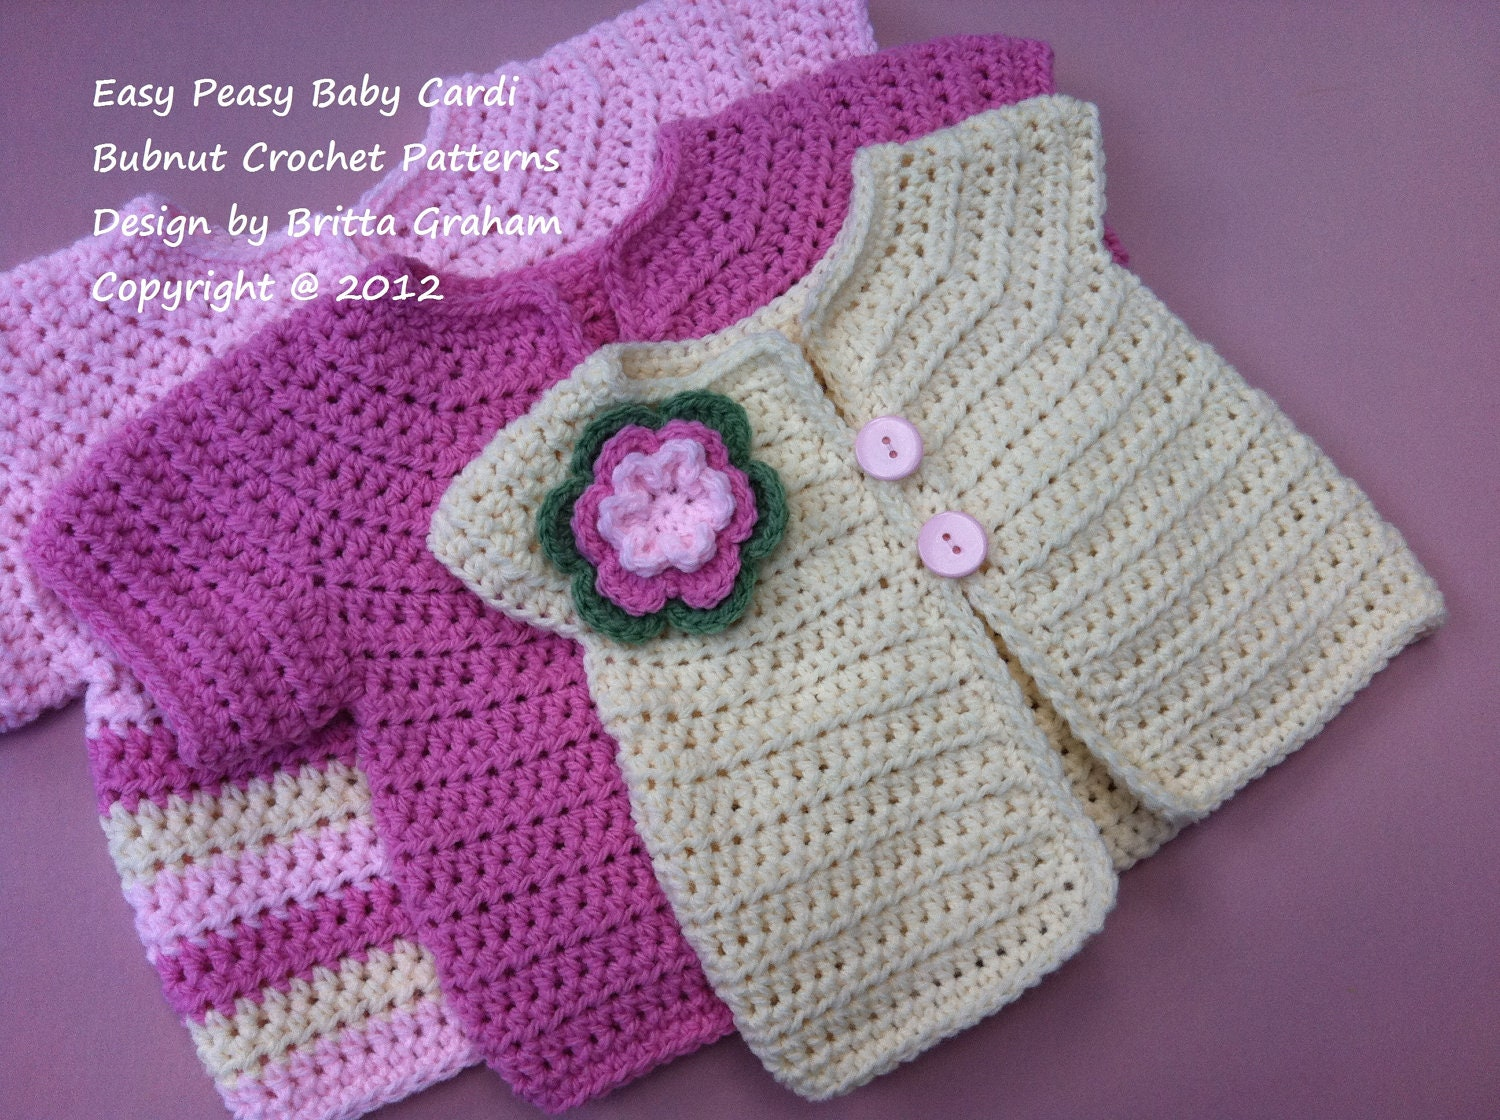 Easy Crochet Baby Sweater Pattern Free : Crochet Baby Sweater Patterns Easy Free www.galleryhip ...